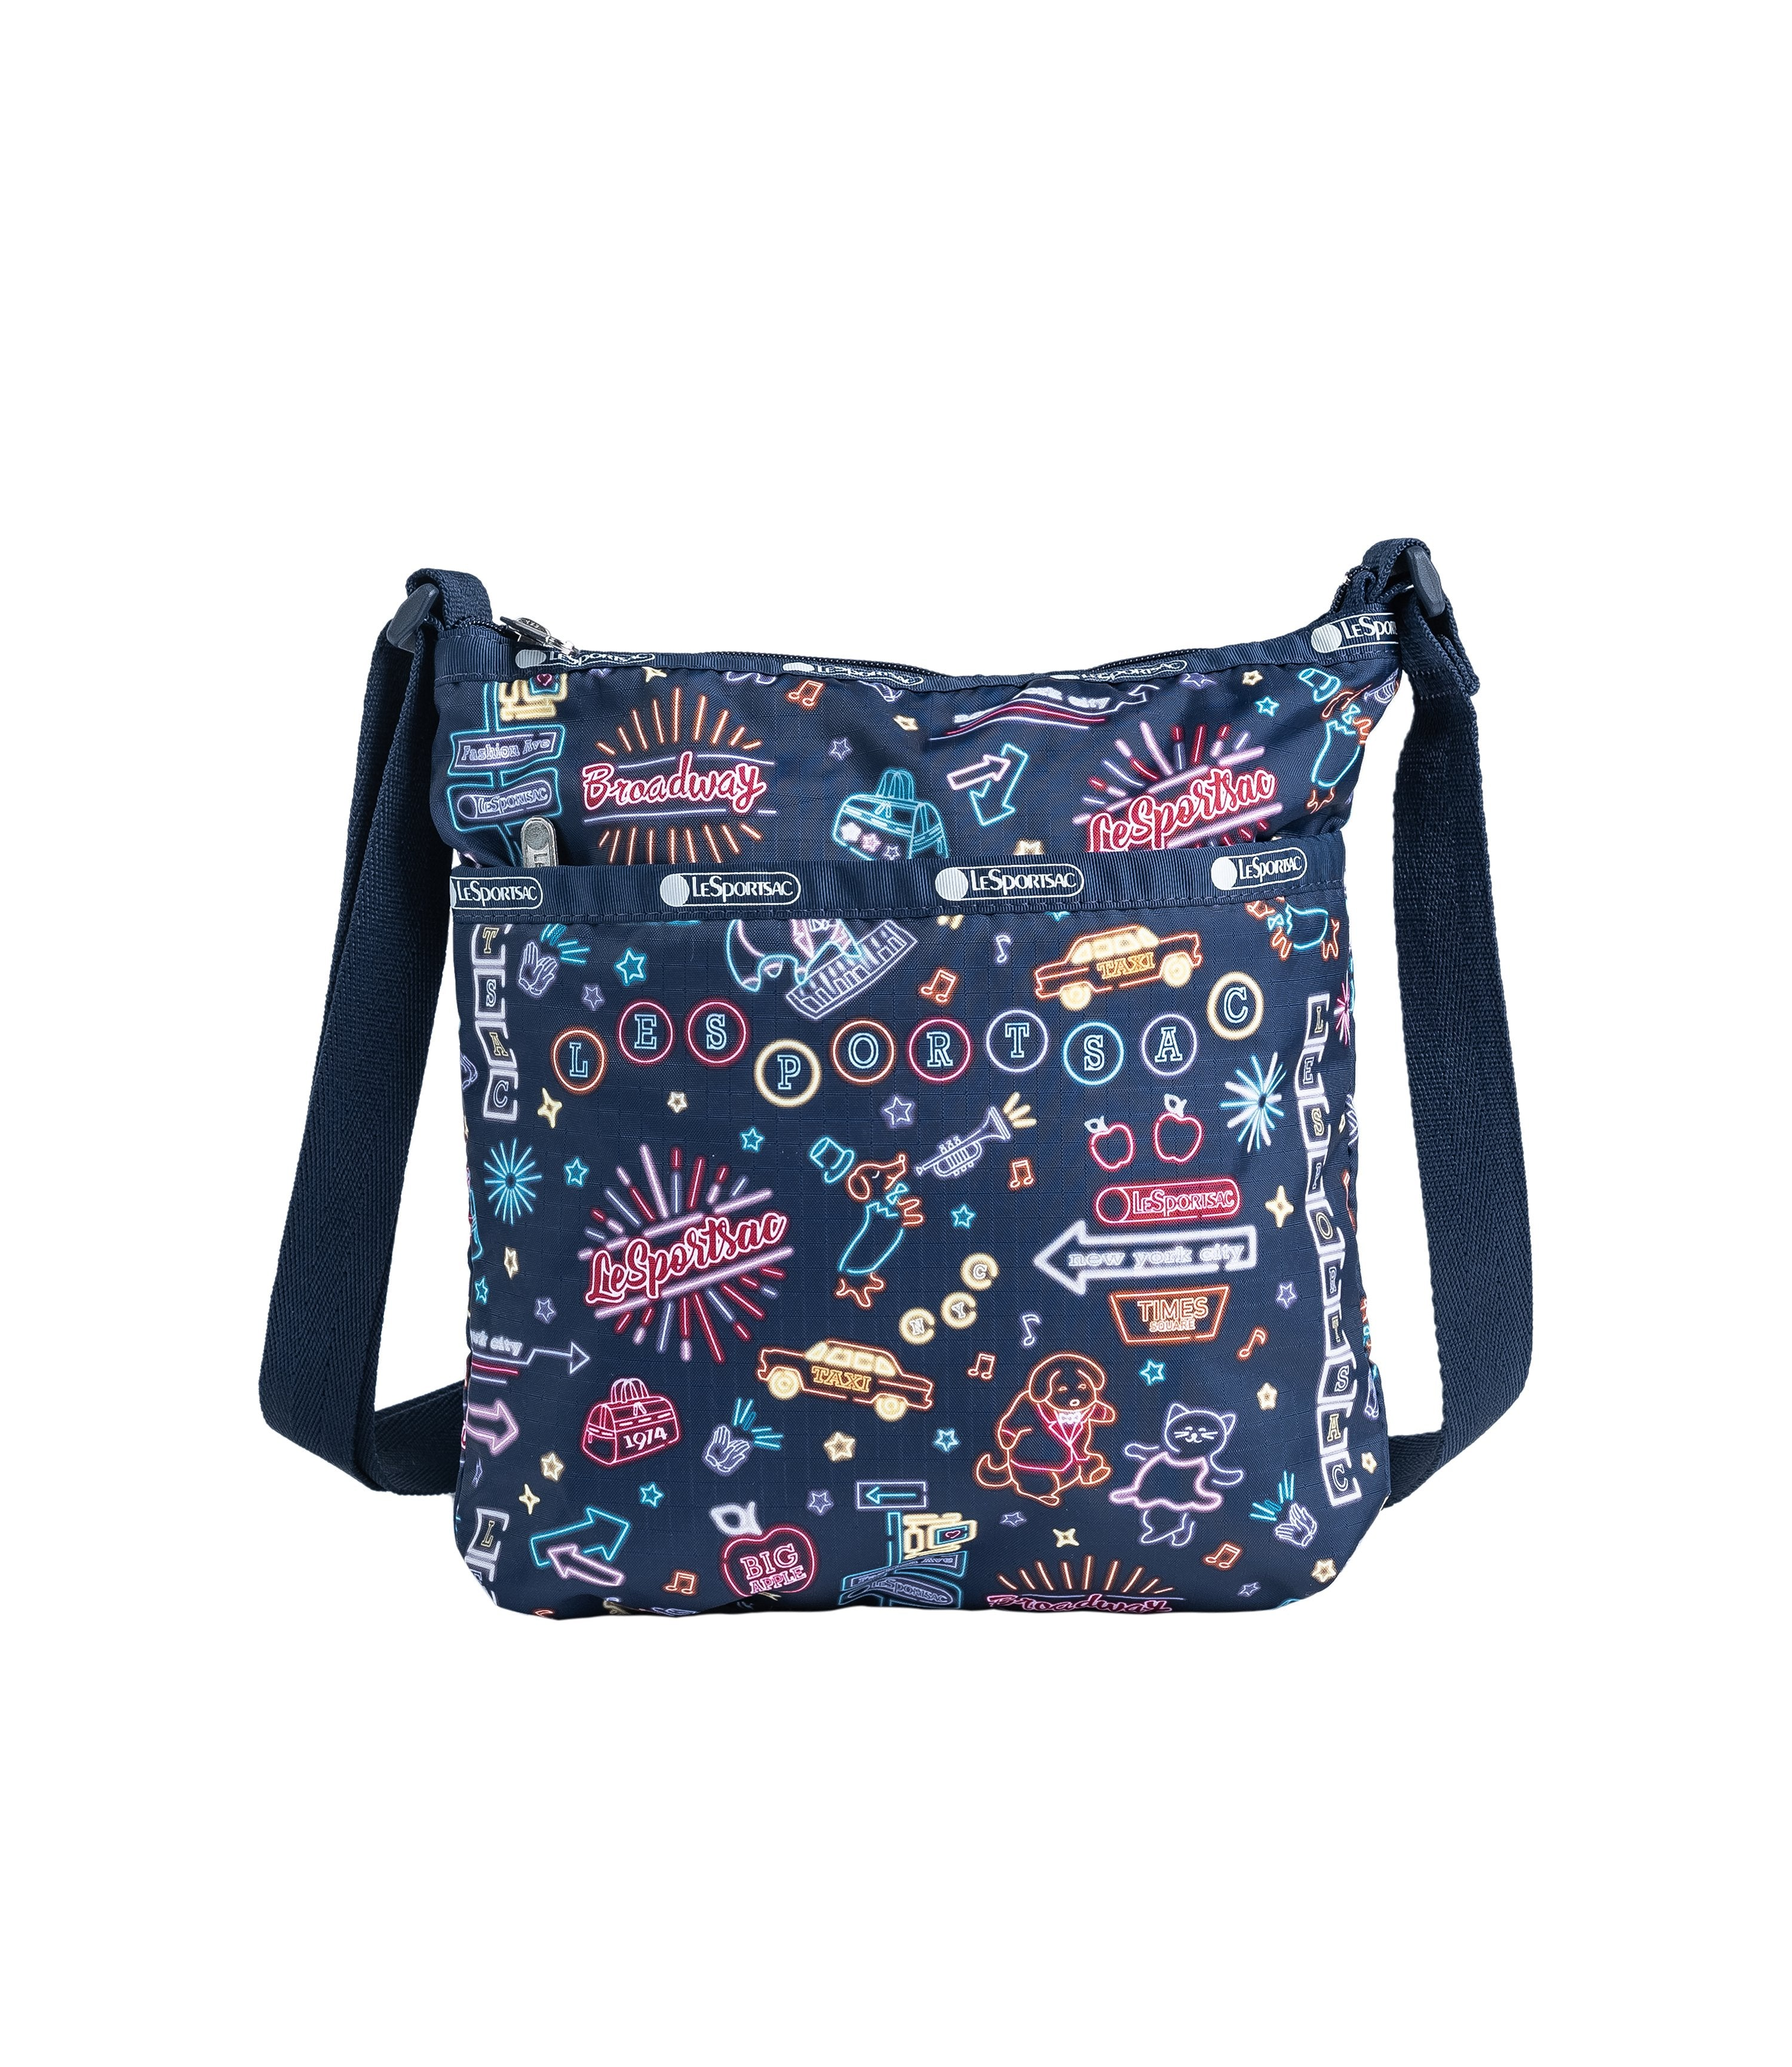 LeSportsac - Handbags - On-The-Go Crossbody - Neon Nights print